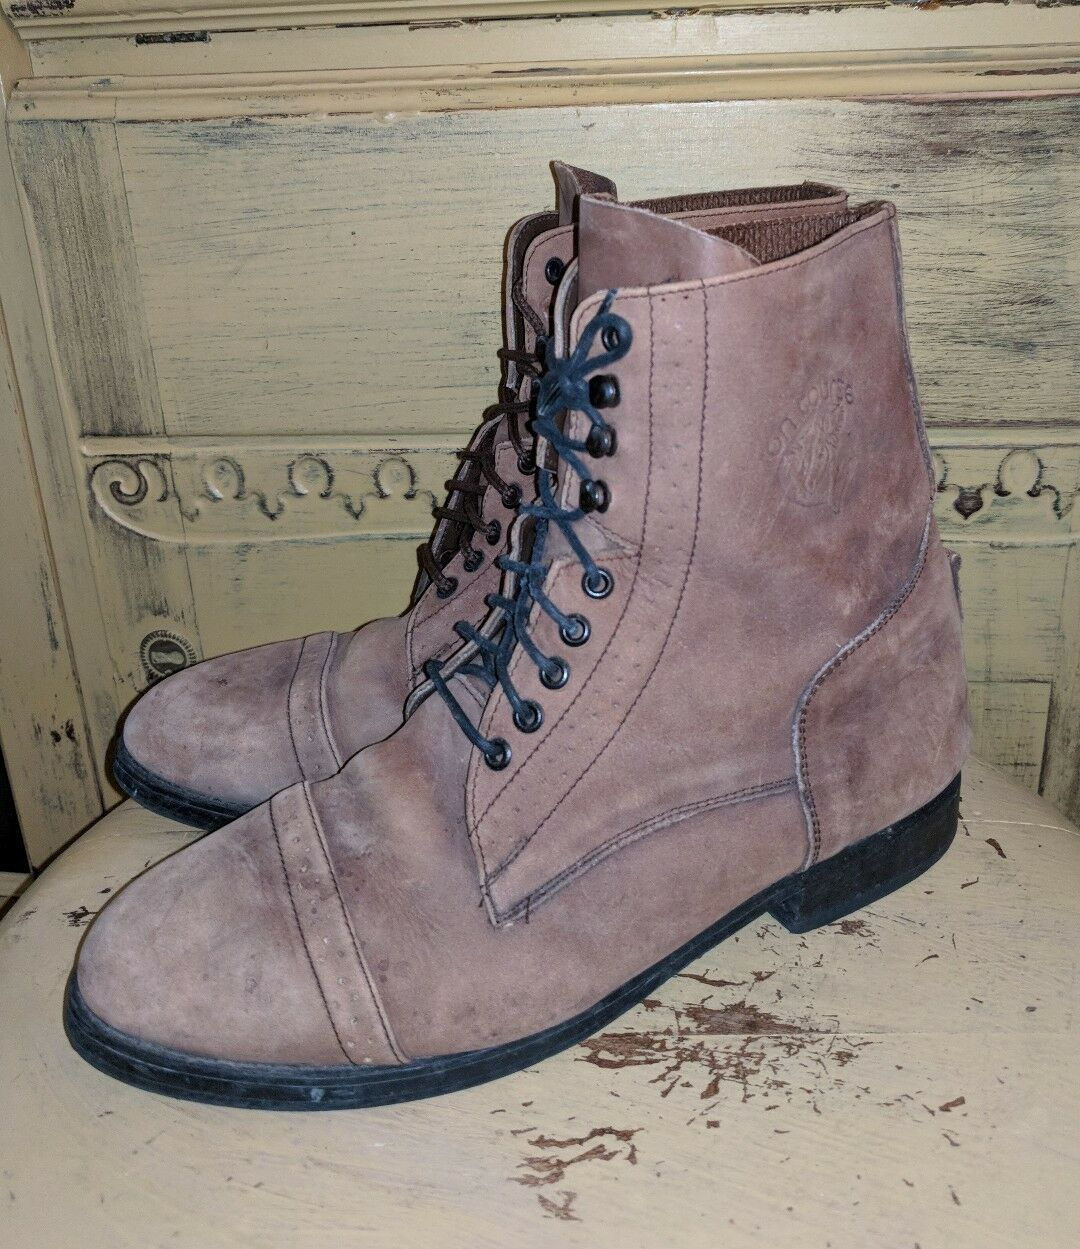 ON COARSE BROWN LEATHER ANKLE RIDING BOOTS LADIES 7.5 M GRANNY WESTERN LACE UP